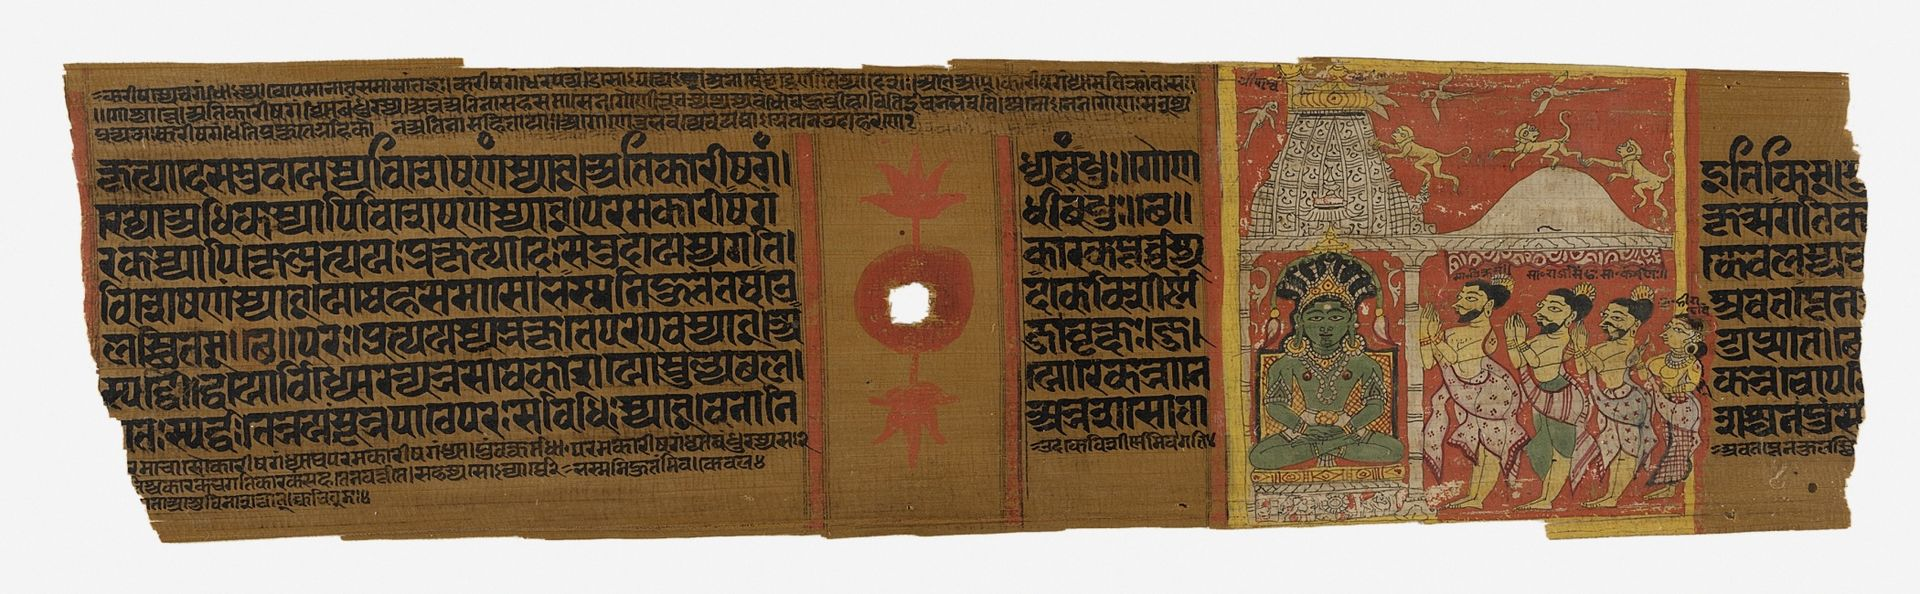 Worship of Parshvanatha, Folio from a Jain text of Sanskrit Grammar, the Siddhahemashabdanushasana by Hemachandra (1089-1172) LACMA M.88.62.1.jpg